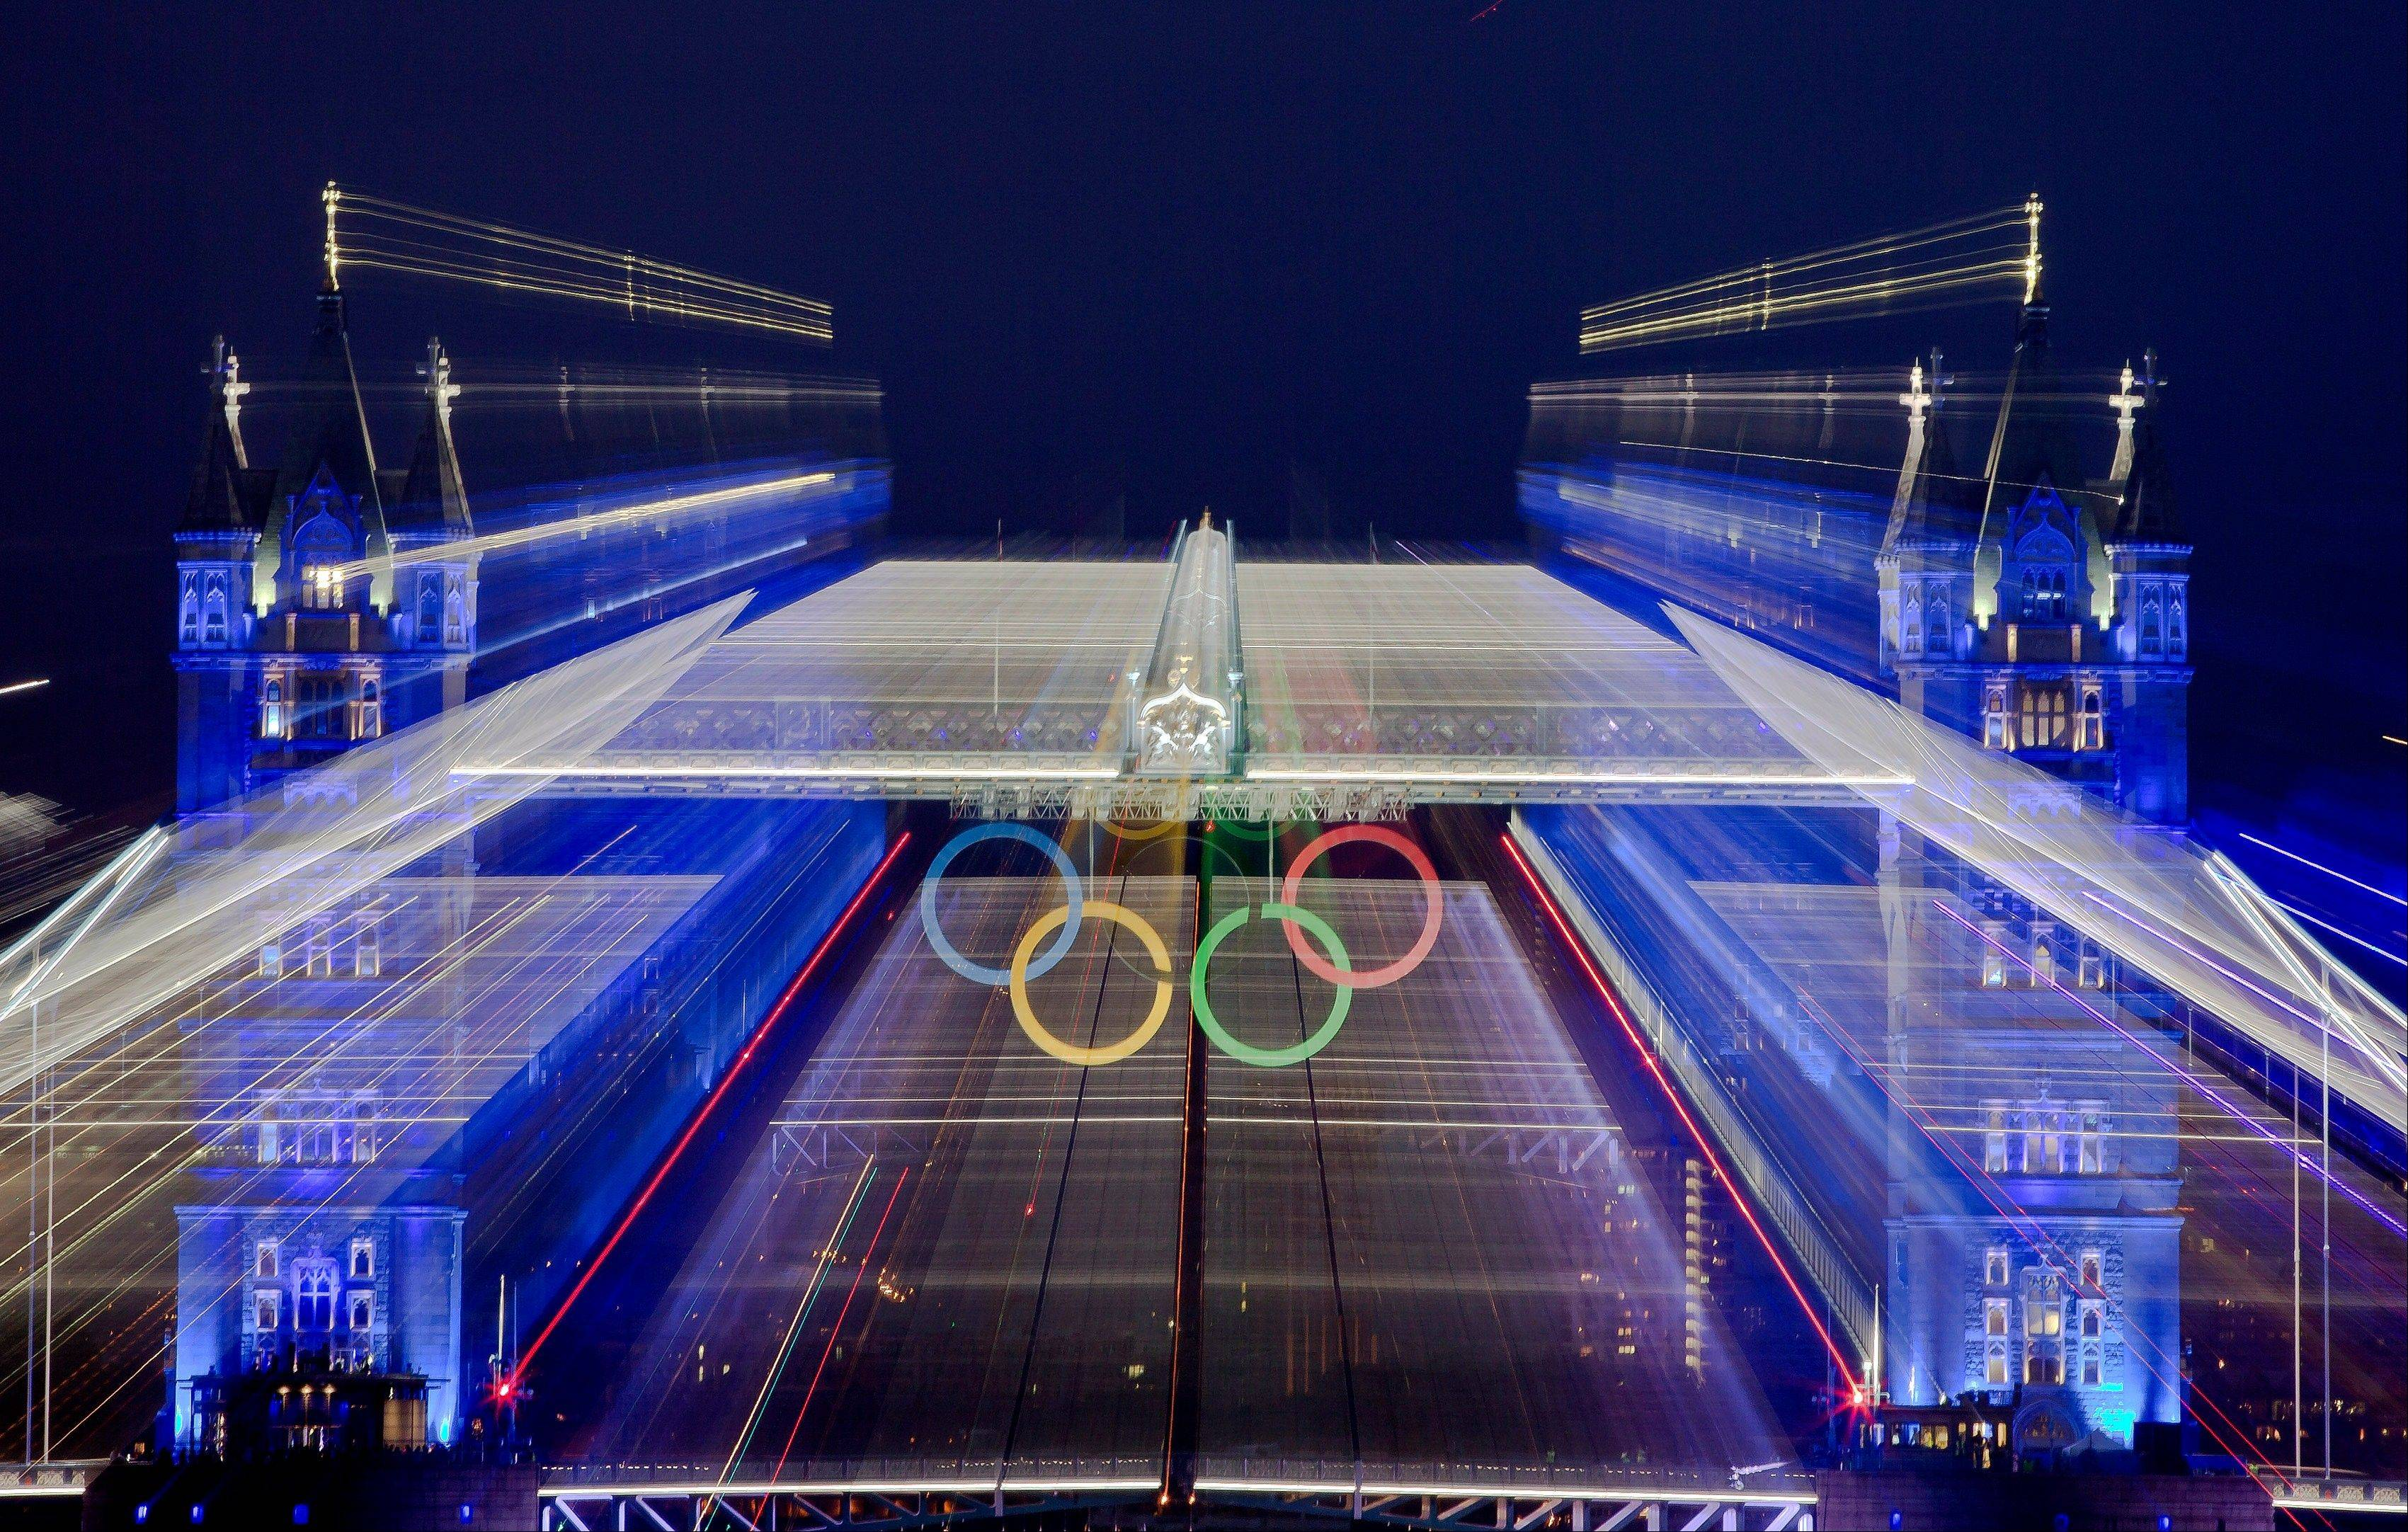 The iconic Tower Bridge over the River Thames in central London, decorated with Olympic rings, is seen in this zoom exposure, during the Opening Ceremony at the 2012 Summer Olympics, Friday, July 27, 2012, in London.